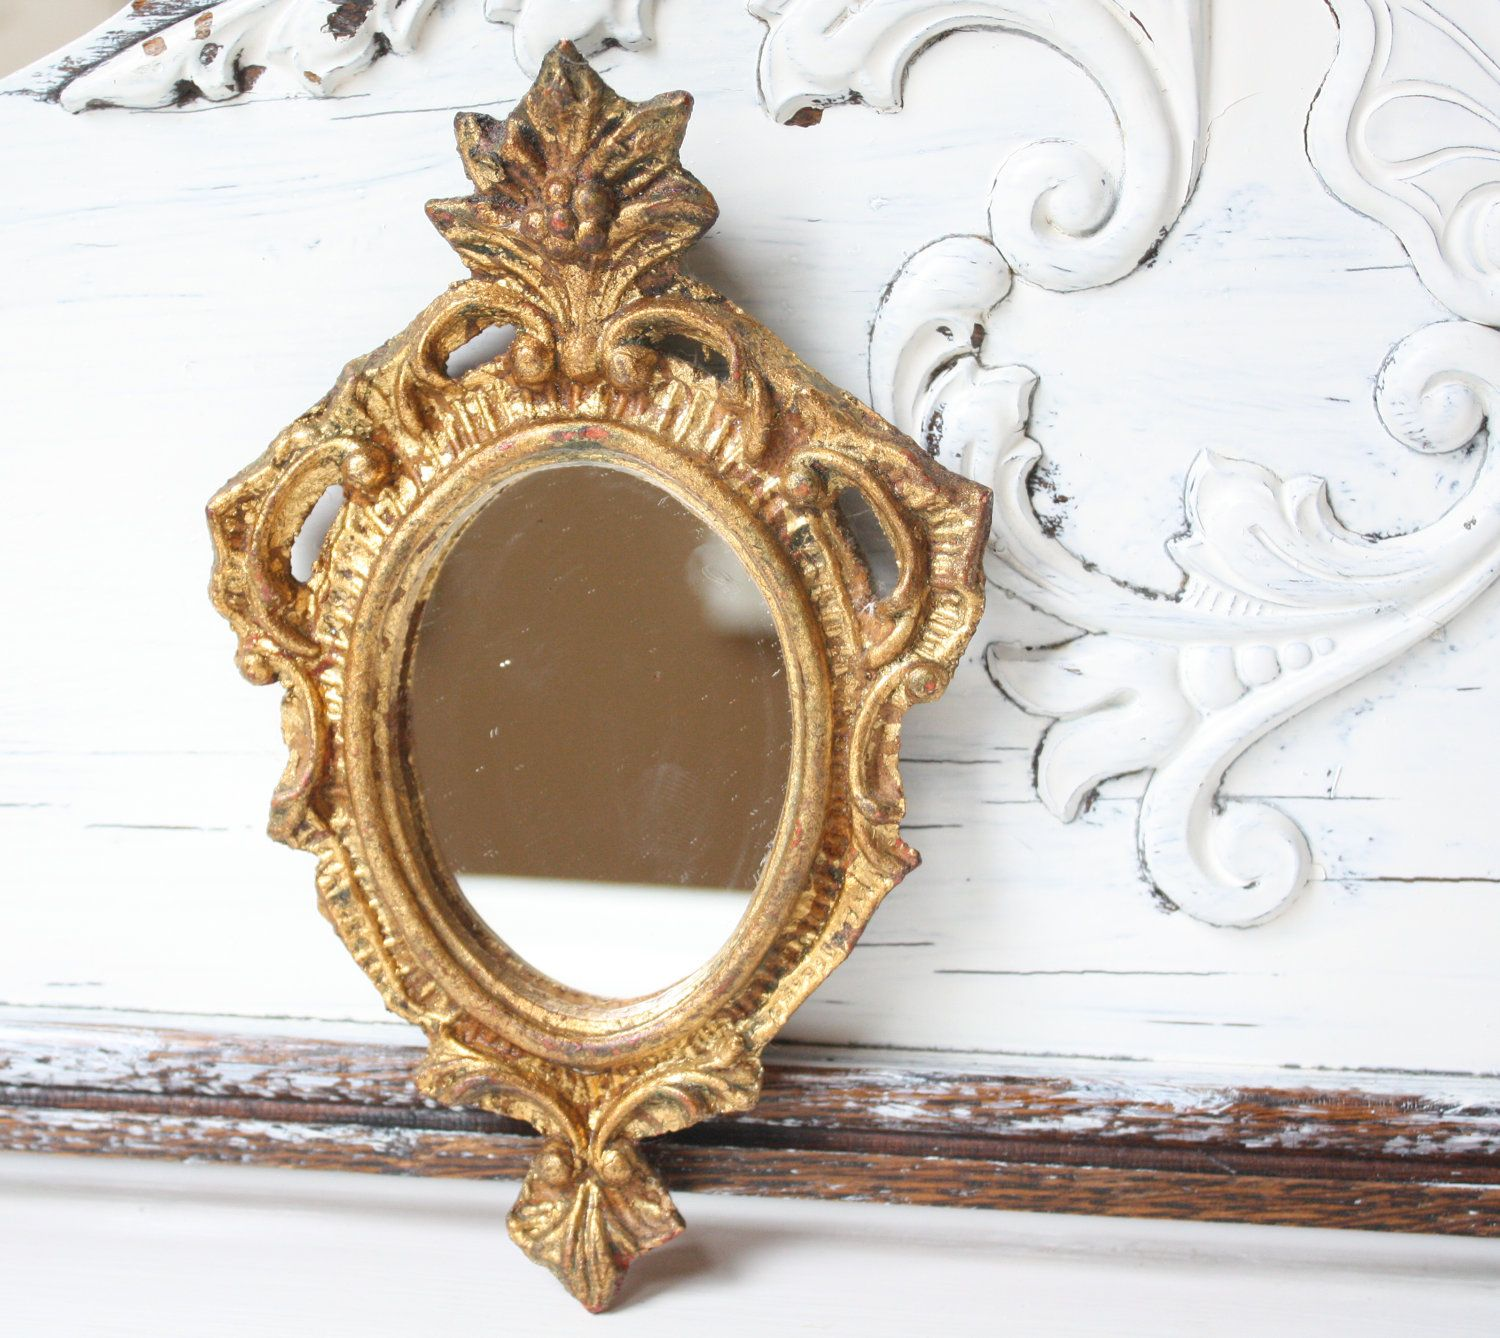 Hollywood Regency Gold Framed Wall Mirror By Bohemianlil On Etsy,